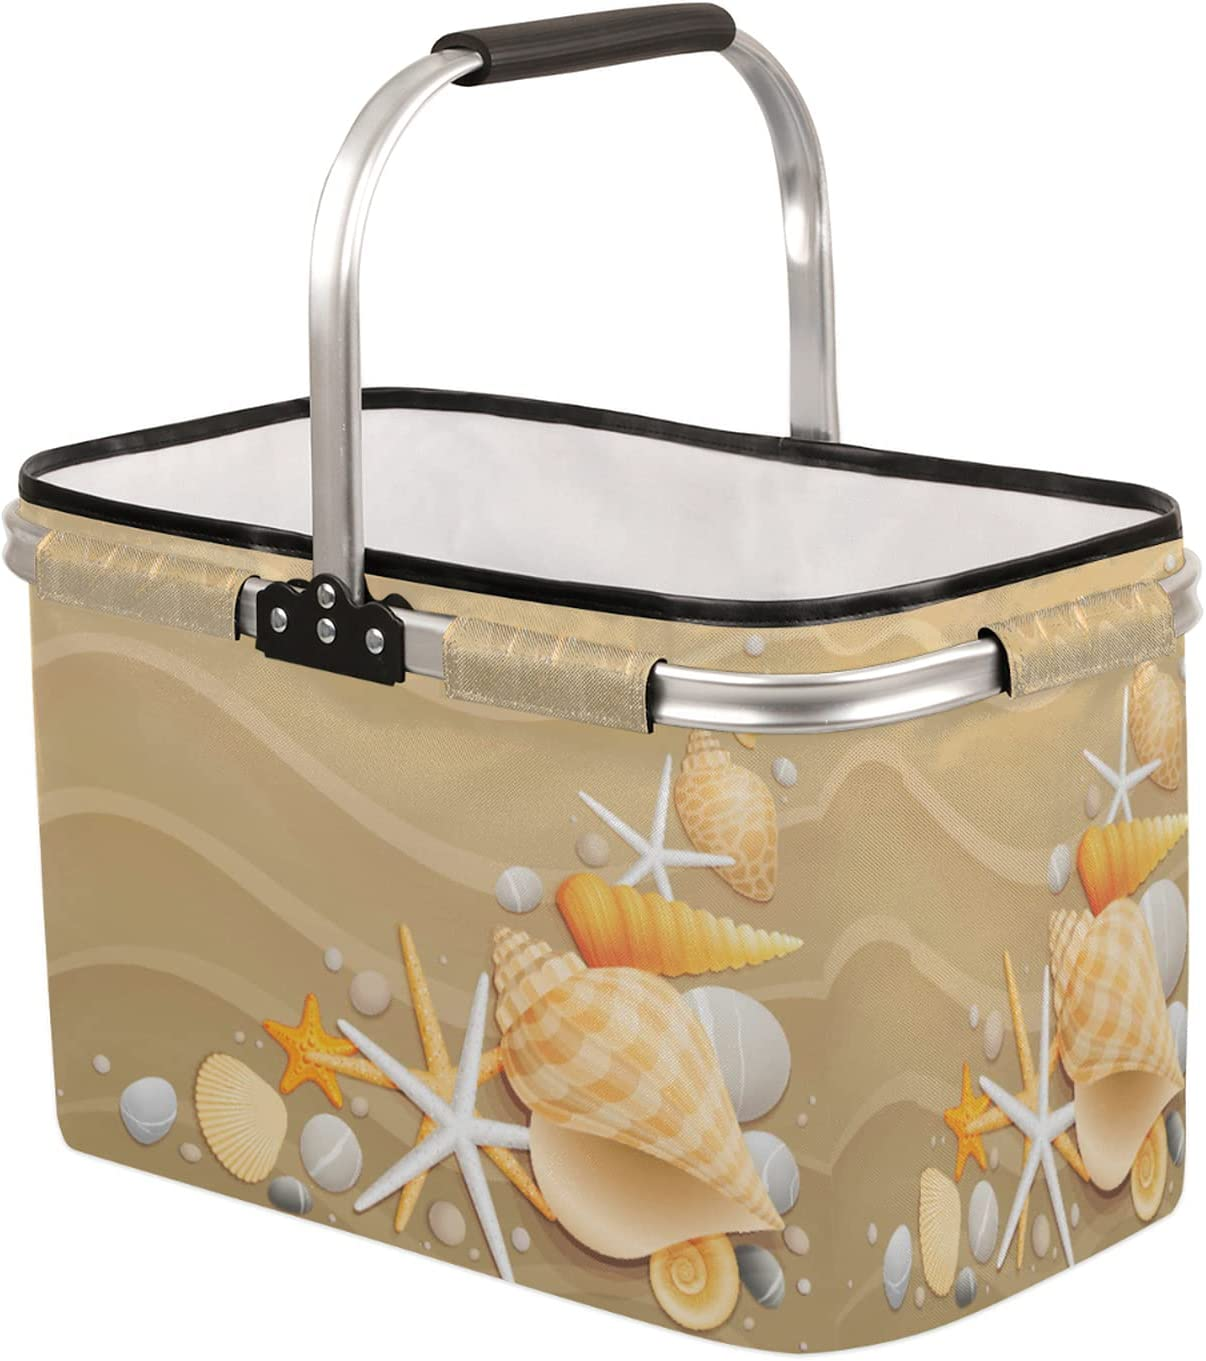 Collapsible Market Basket with Strong Frame Handle 55% OFF Aluminum Some reservation Soft